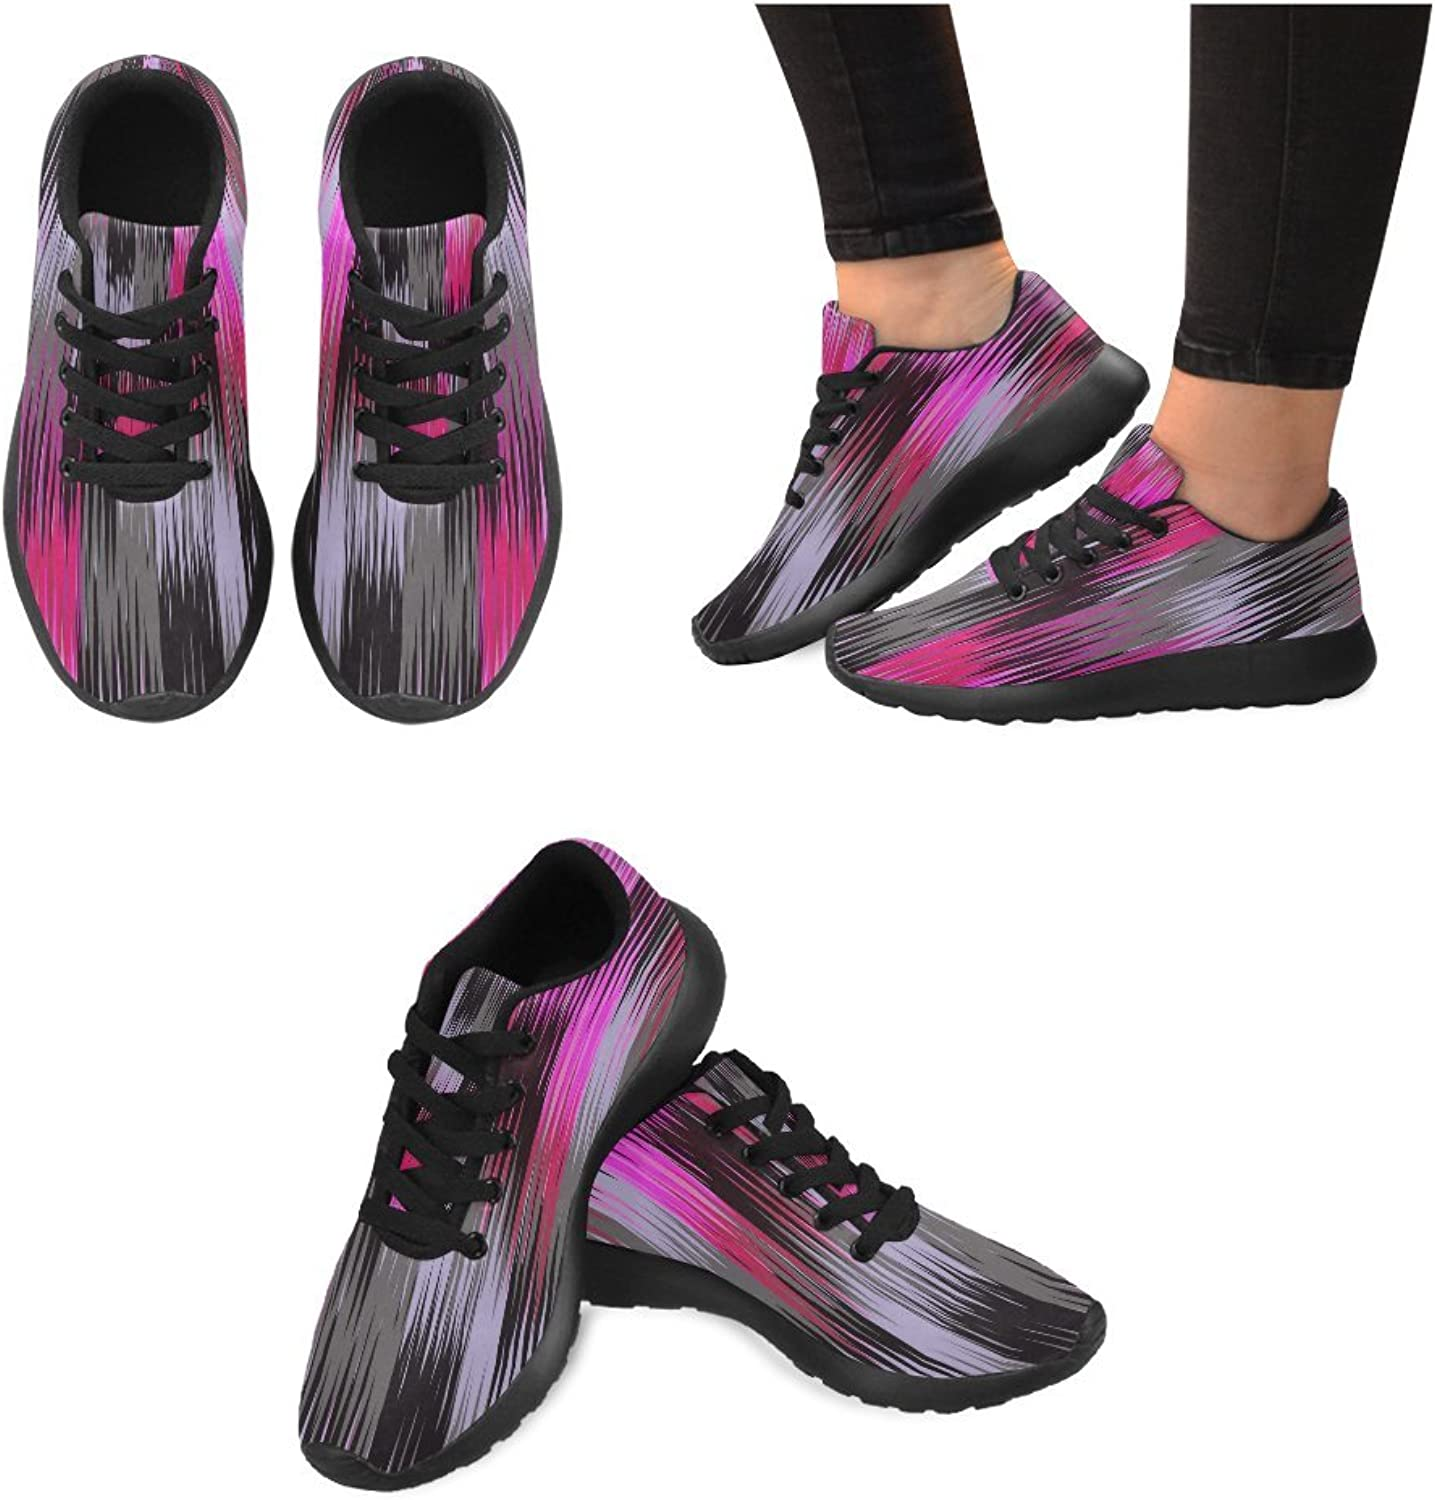 InterestPrint hot color Flowers Pattern Print on Women's Running shoes Casual Lightweight Athletic Sneakers US Size 6-15